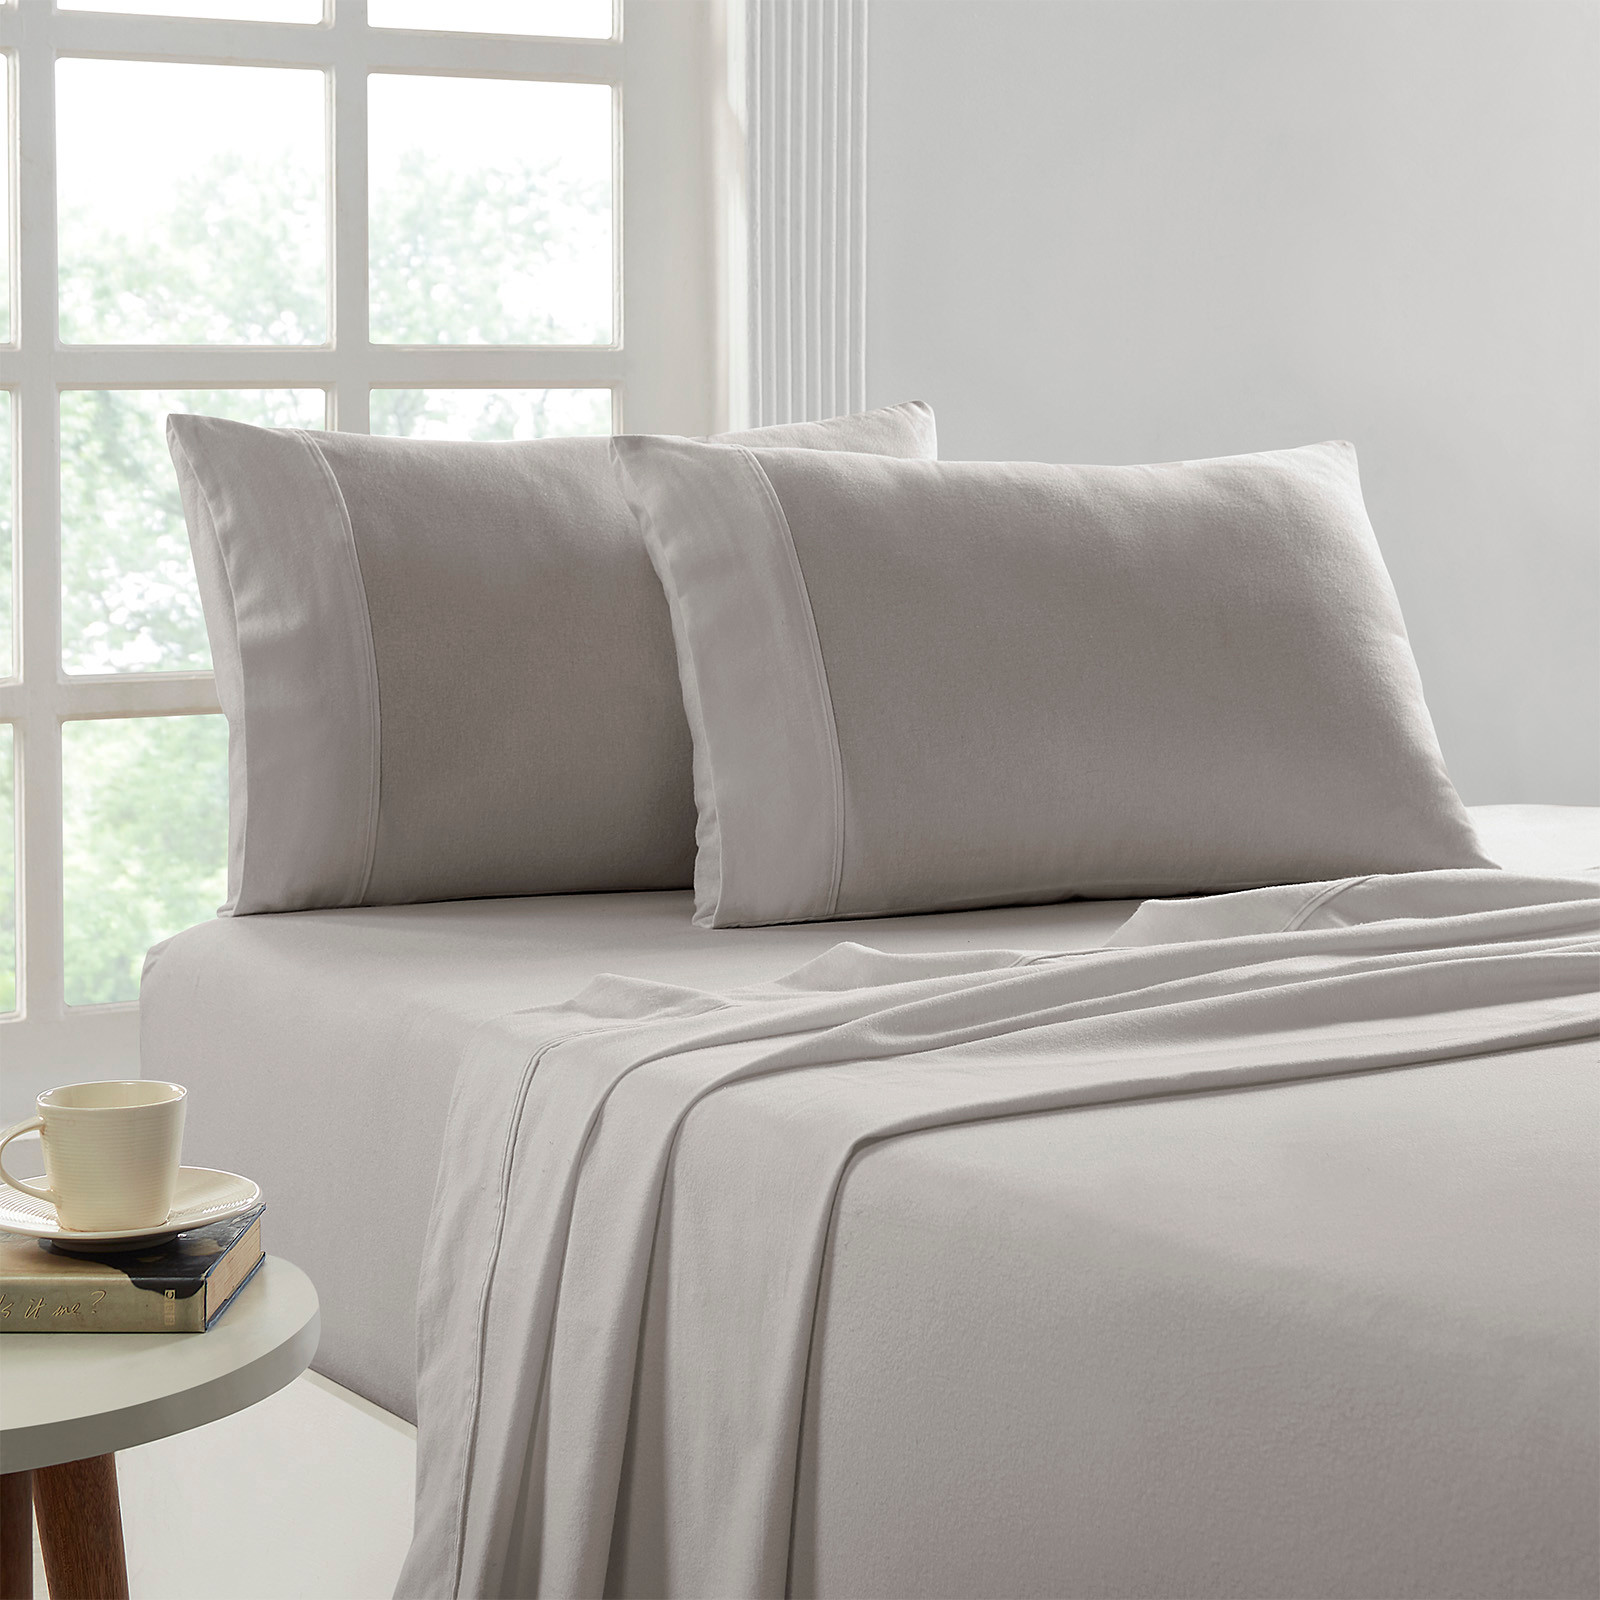 Egyptian Cotton Sheet Set Flannelette 175GSM -  Colour Graphite  Soft and snug these sheets take out the cold shock of jumping into bed during winter nights. Warming in minutes and staying warm all night with total comfort of 100% Egyptian Cotton therefore keeping you fresh and comfortable sweat free. Luxury 100% Egyptian cotton woven into quality 175 GSM Brushed cotton construction , these sheets are your perfect winter sheets.